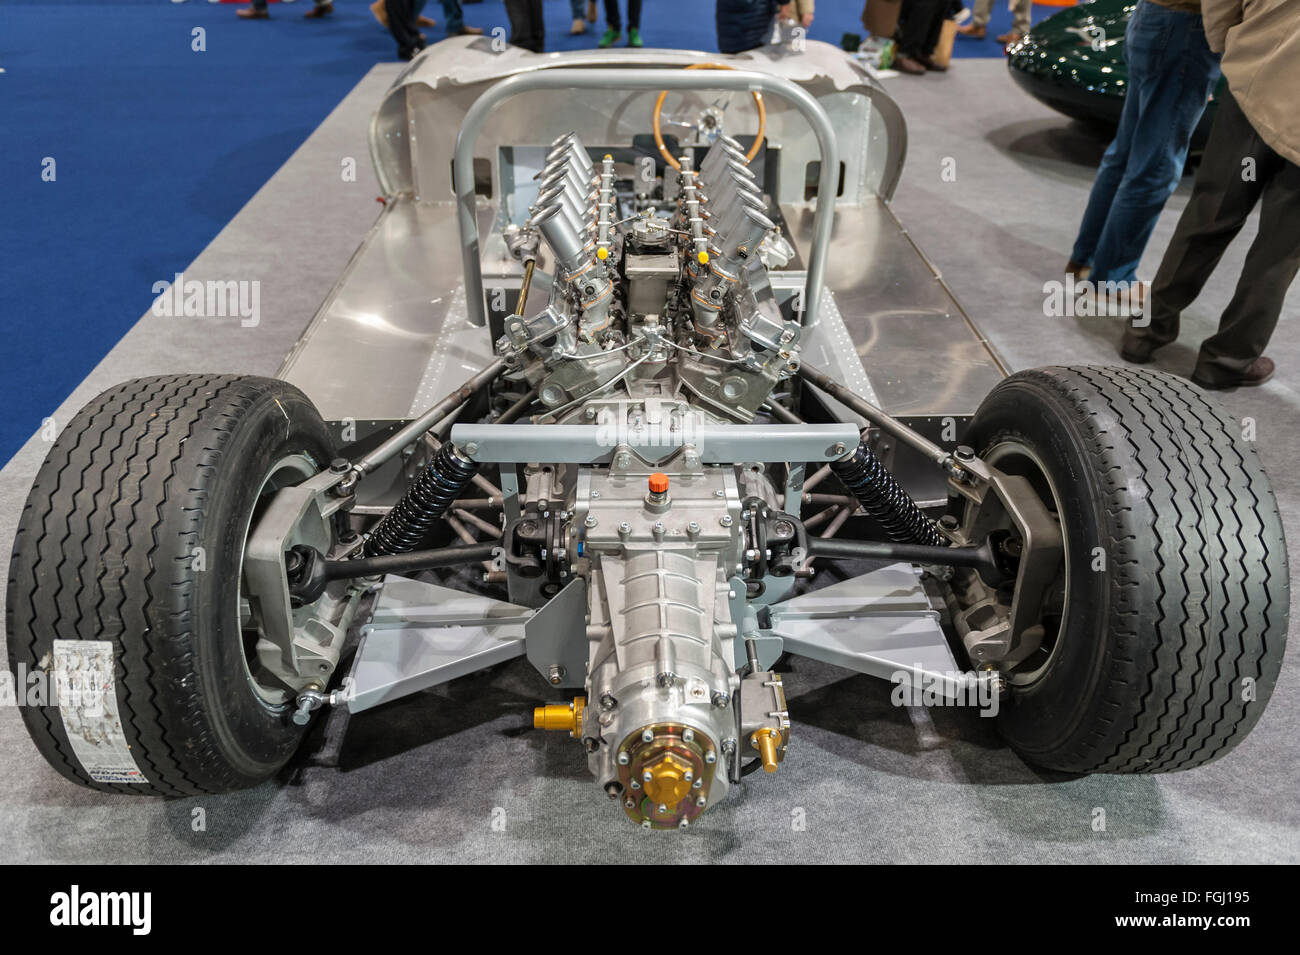 photo e november dhxehw engine alamy in uk photos jaguar for finely stock birmingham sale images detailed